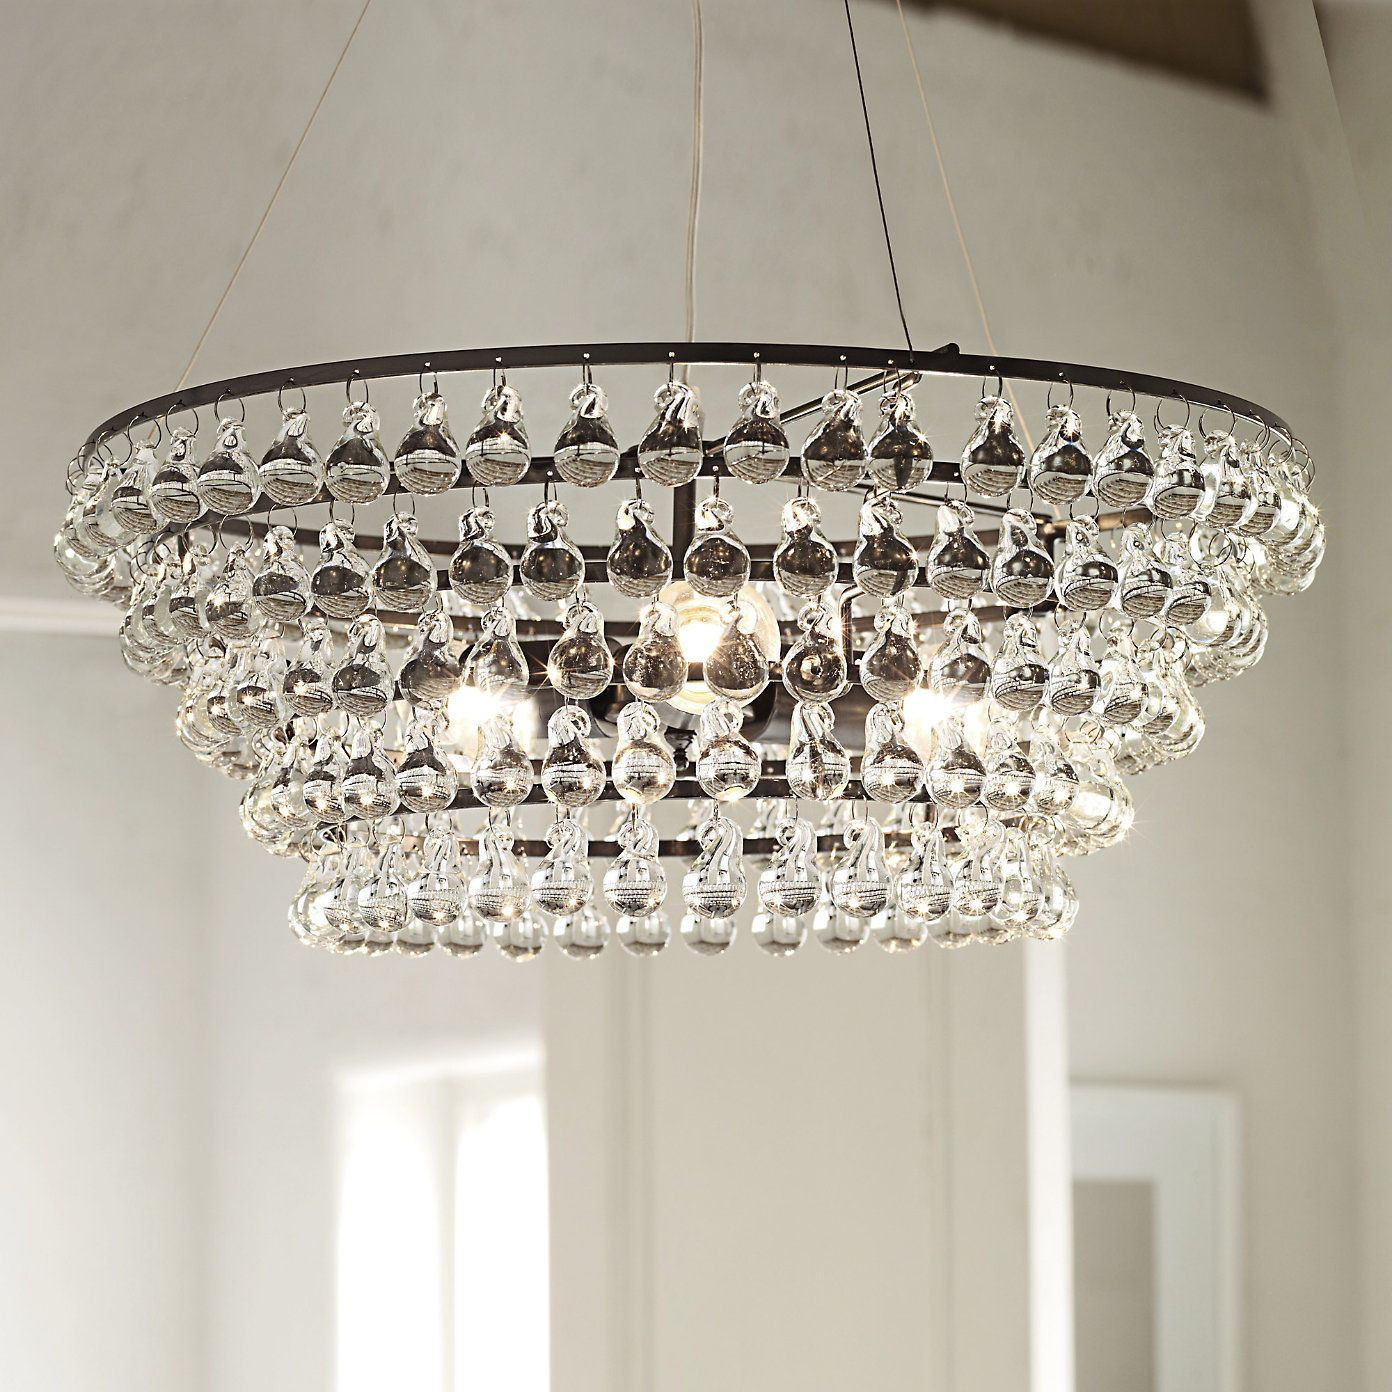 Home Accessories Lighting Solid Gl Orb Ceiling Light From The White Company